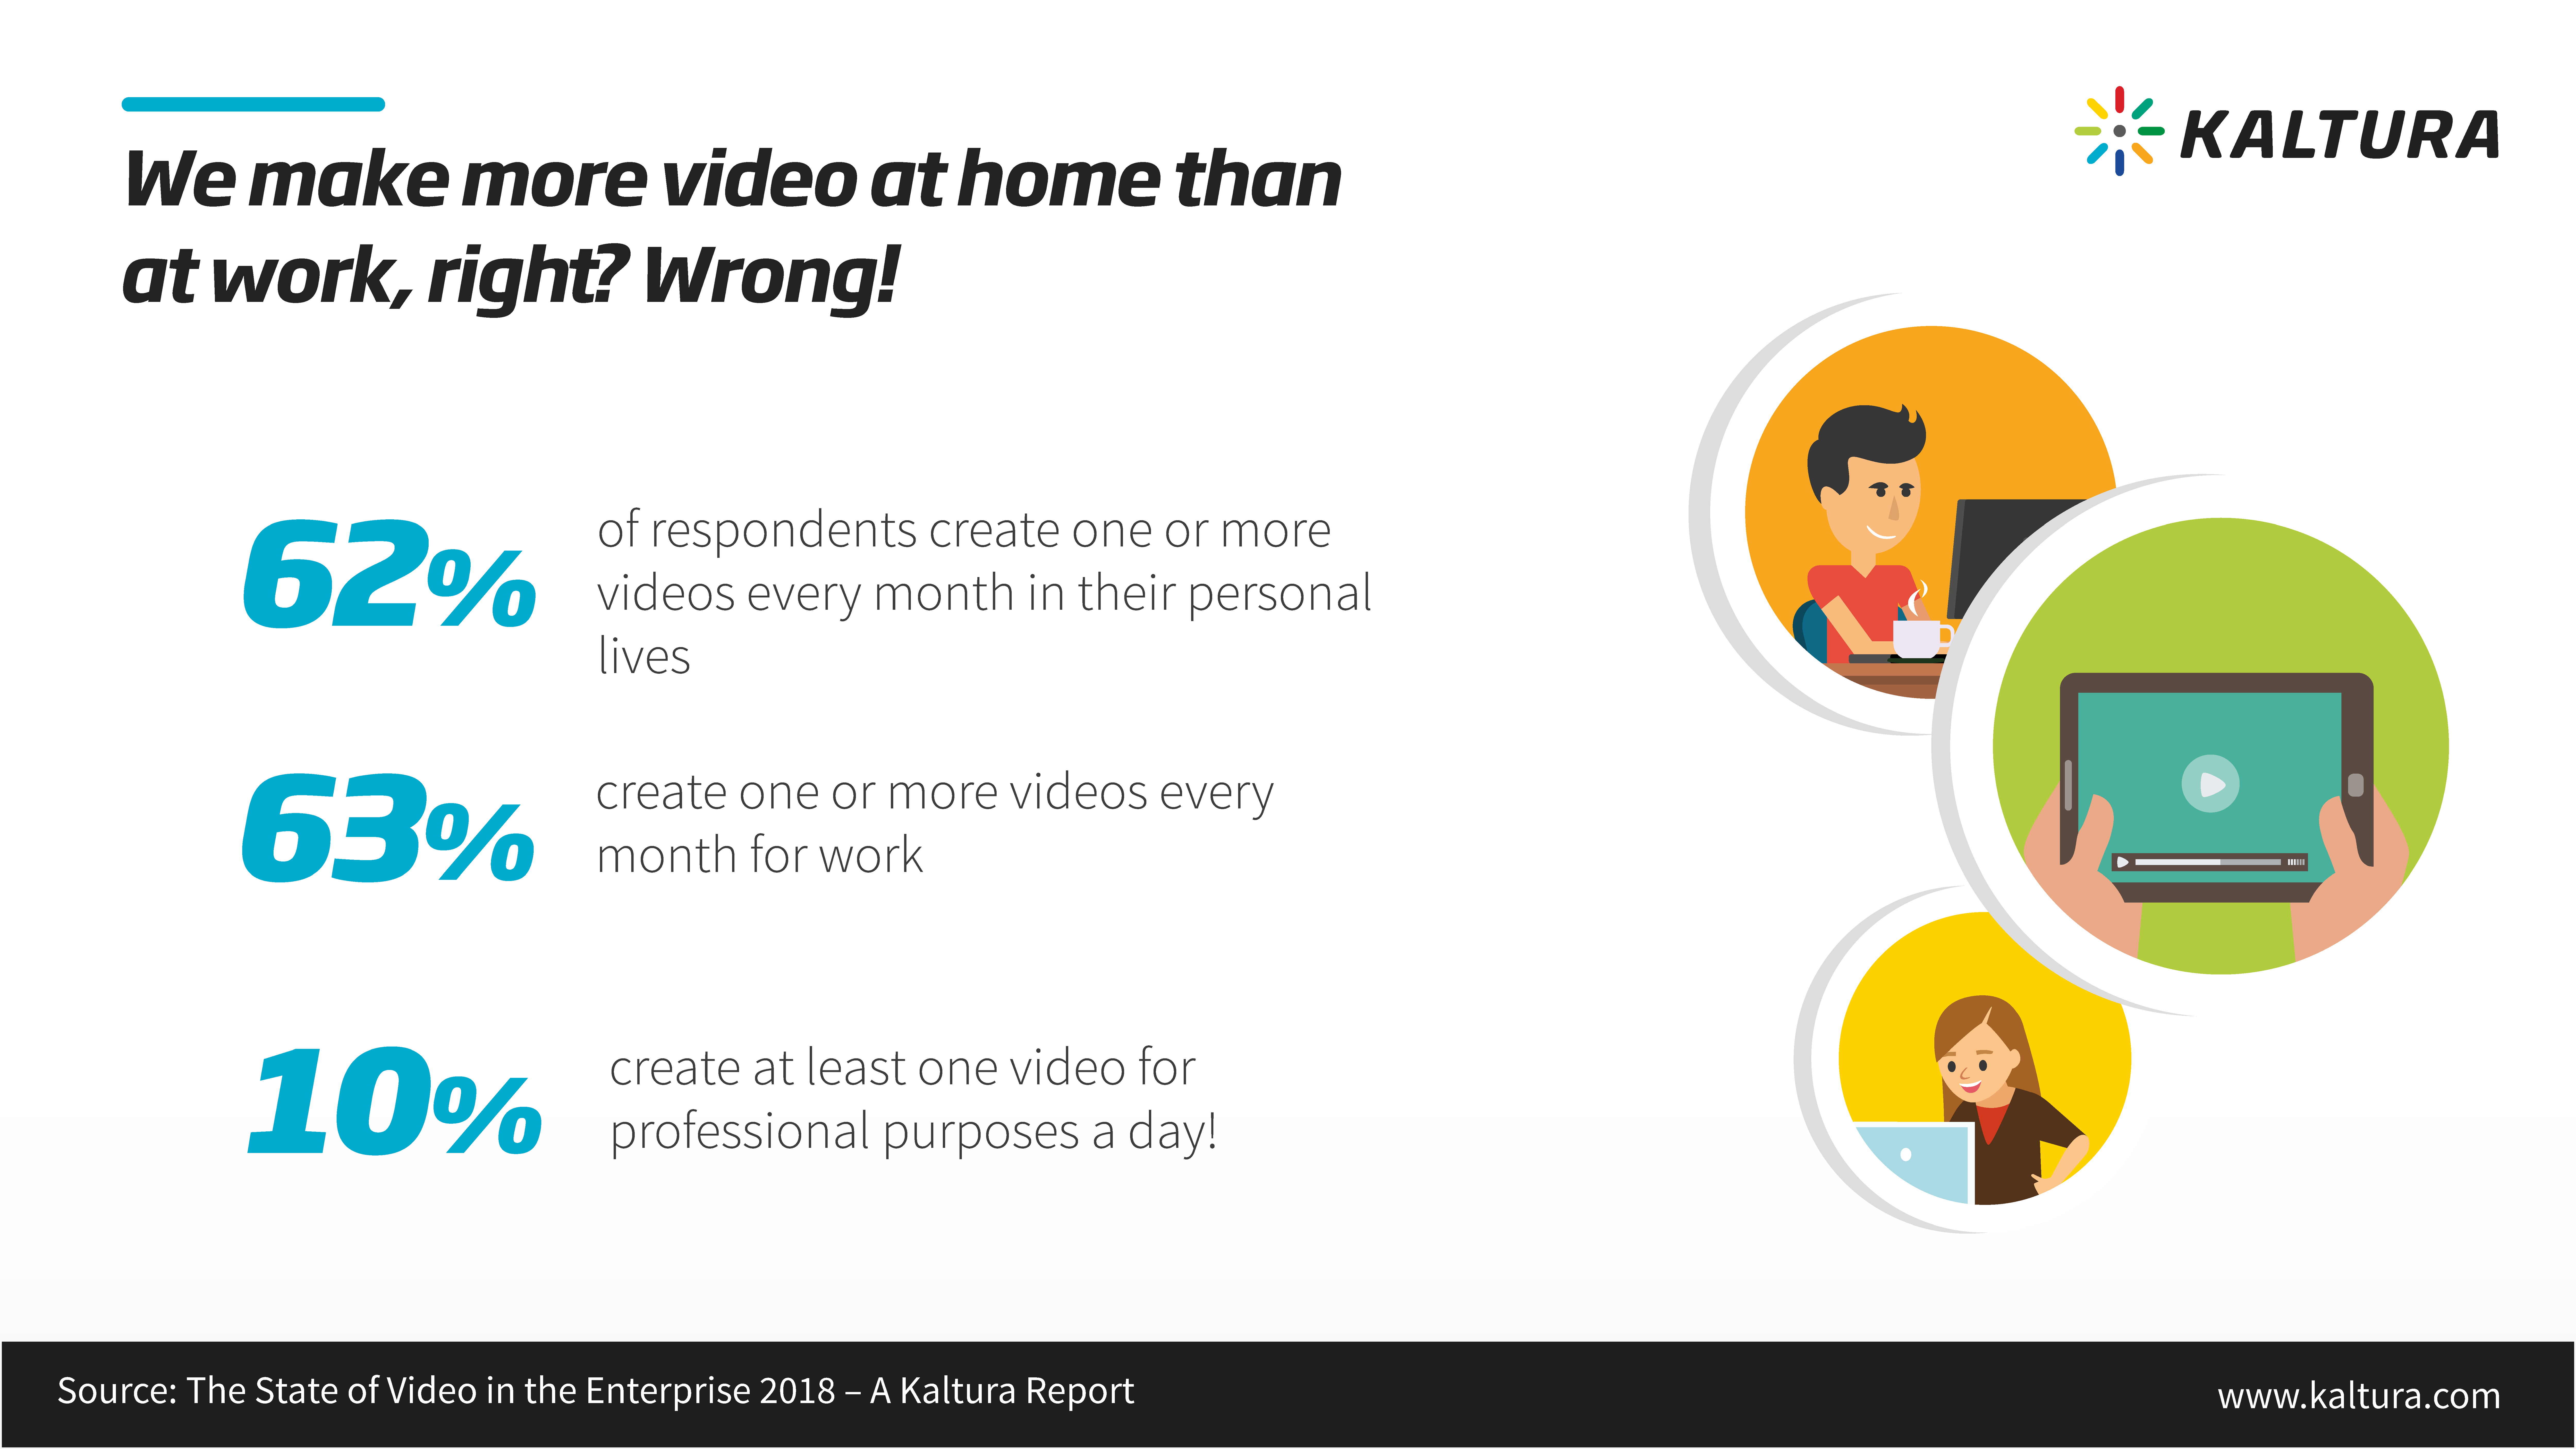 We make as much video at work as we do at home